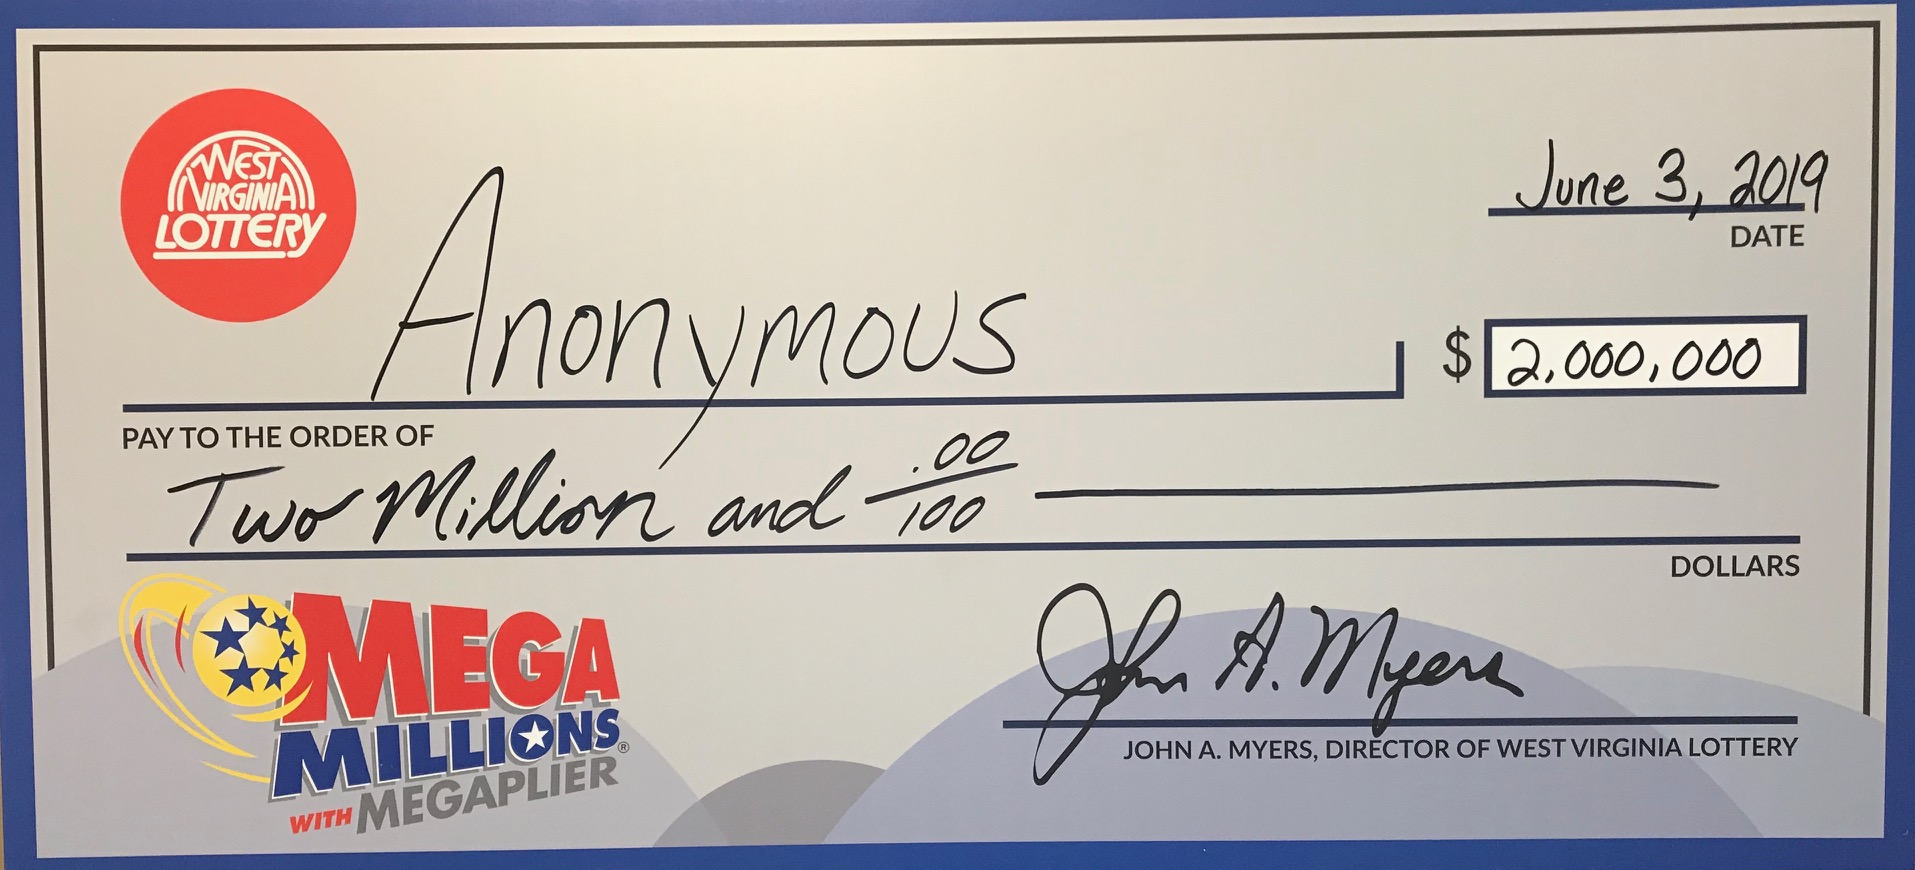 Lottery Purchaser Of 2 Million Mega Millions Ticket Chooses To Remain Anonymous Wv Metronews